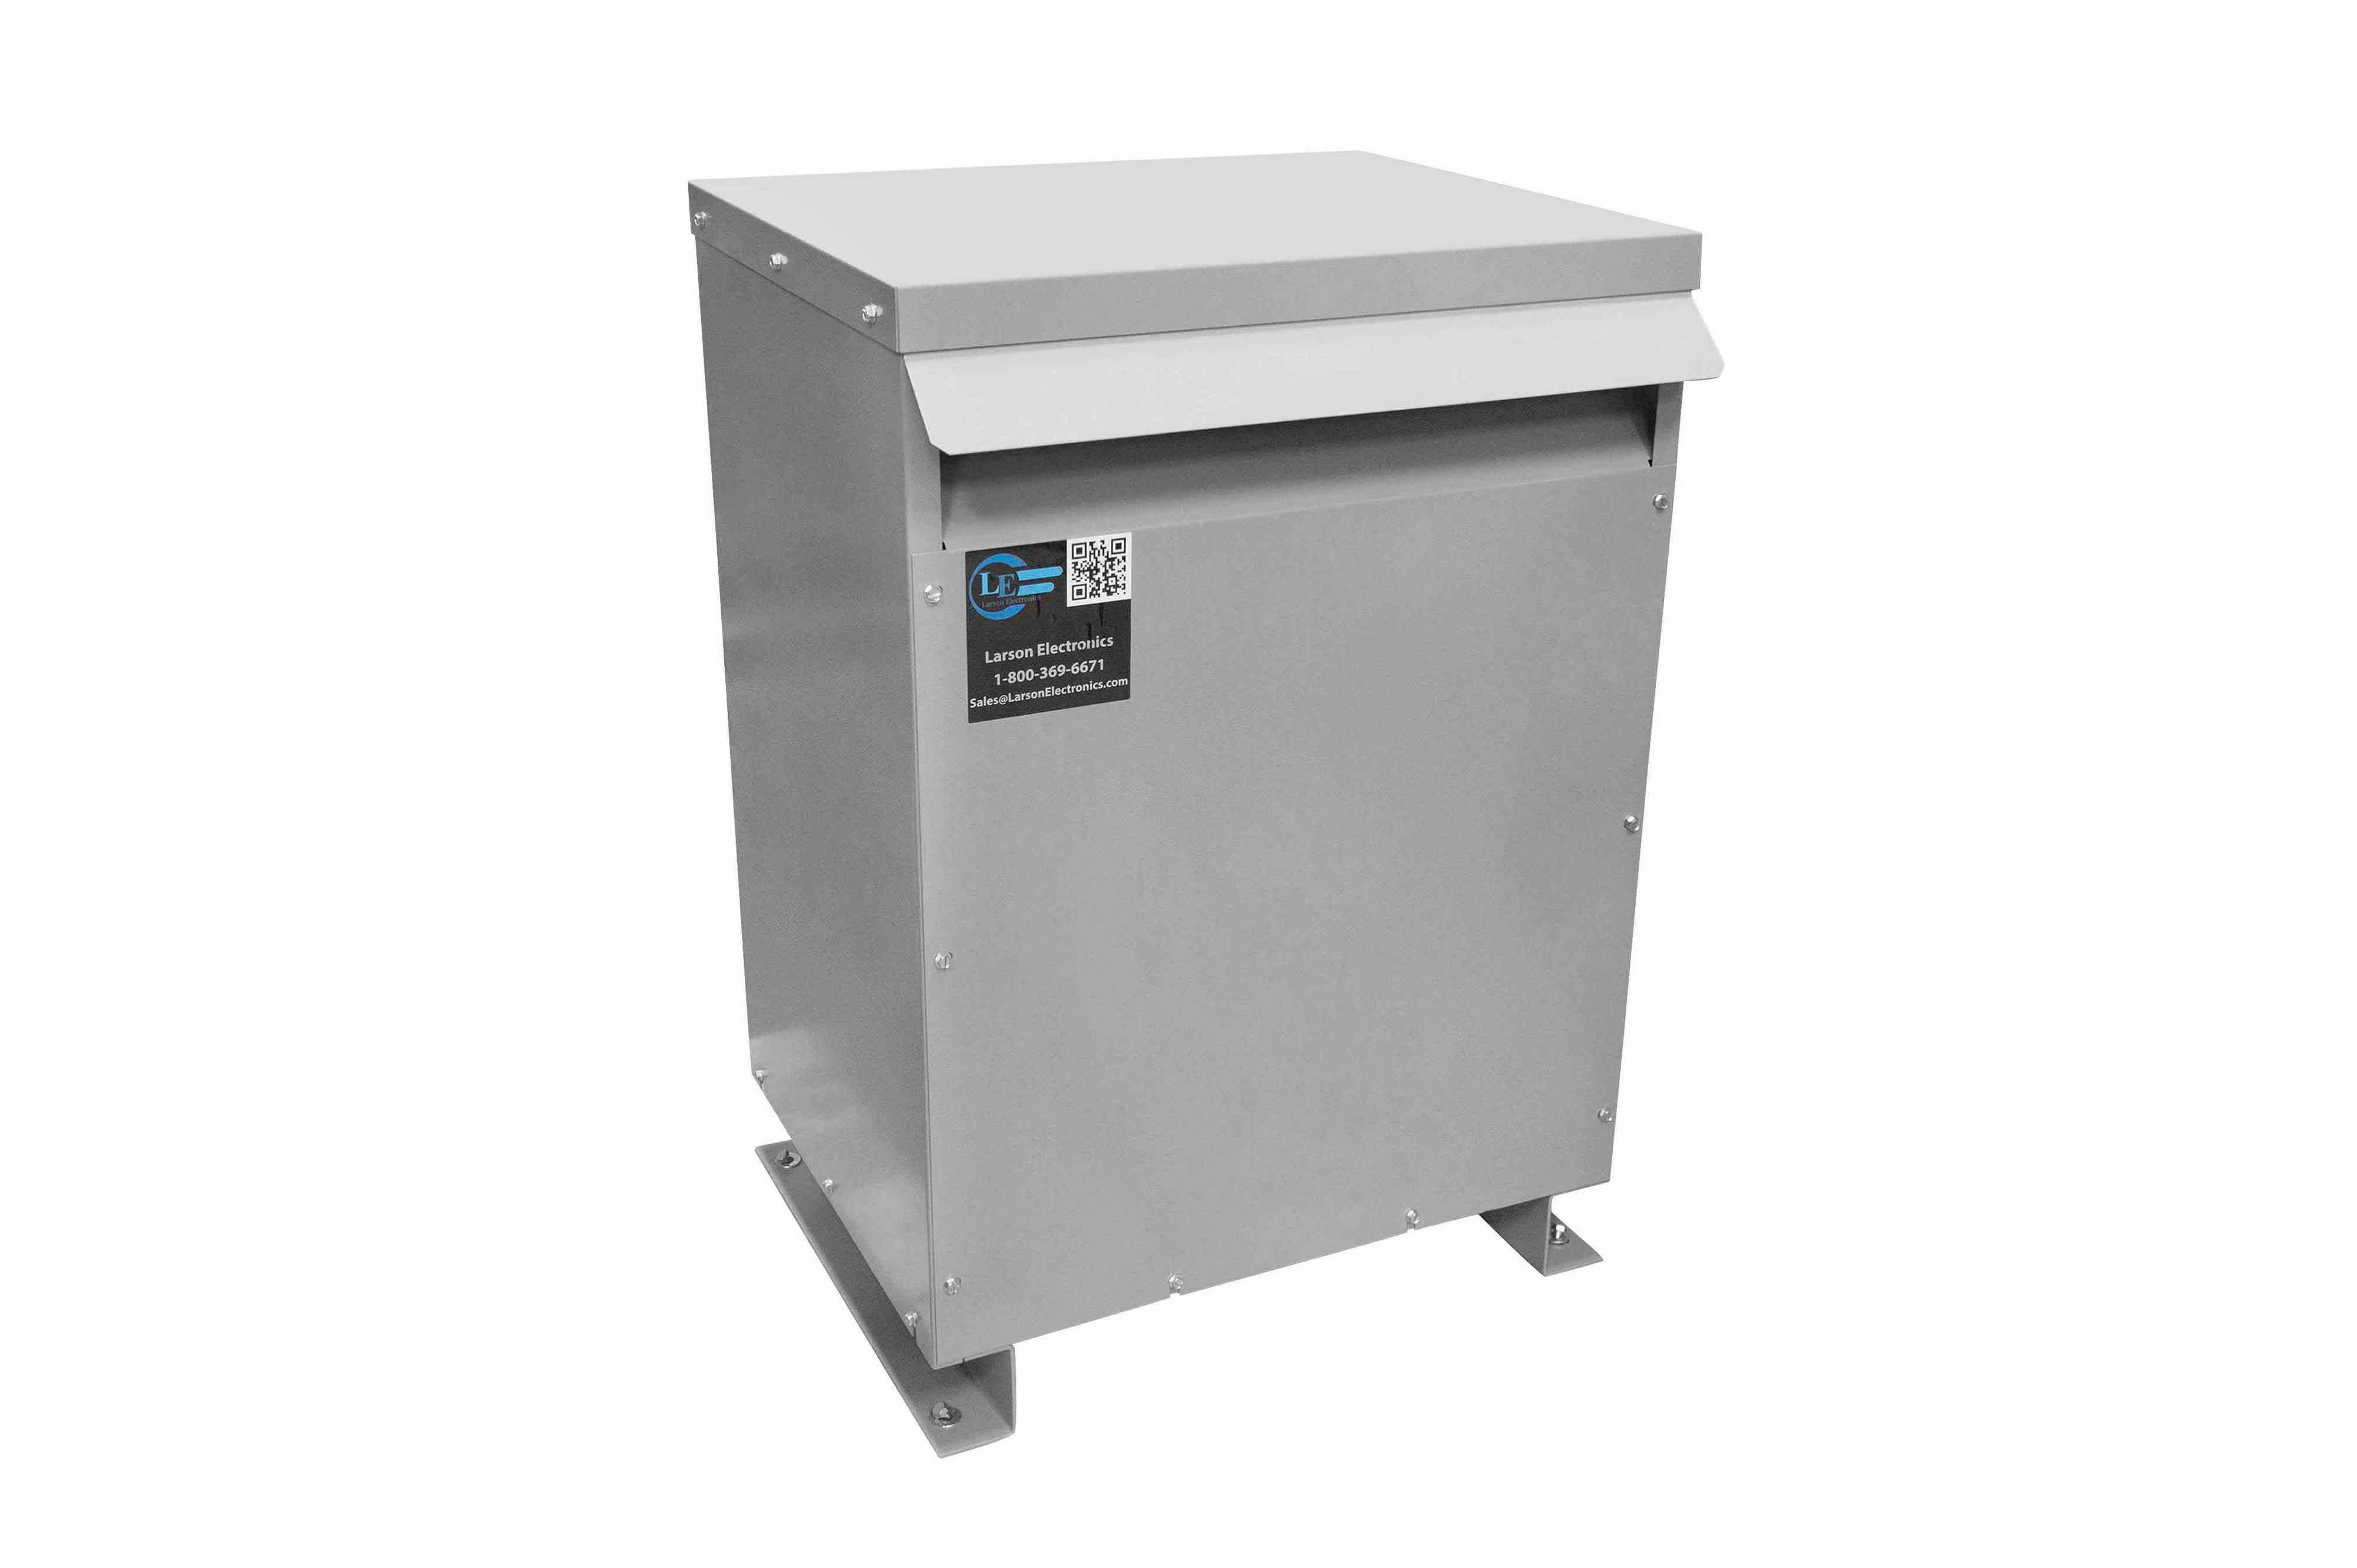 20 kVA 3PH DOE Transformer, 208V Delta Primary, 208Y/120 Wye-N Secondary, N3R, Ventilated, 60 Hz